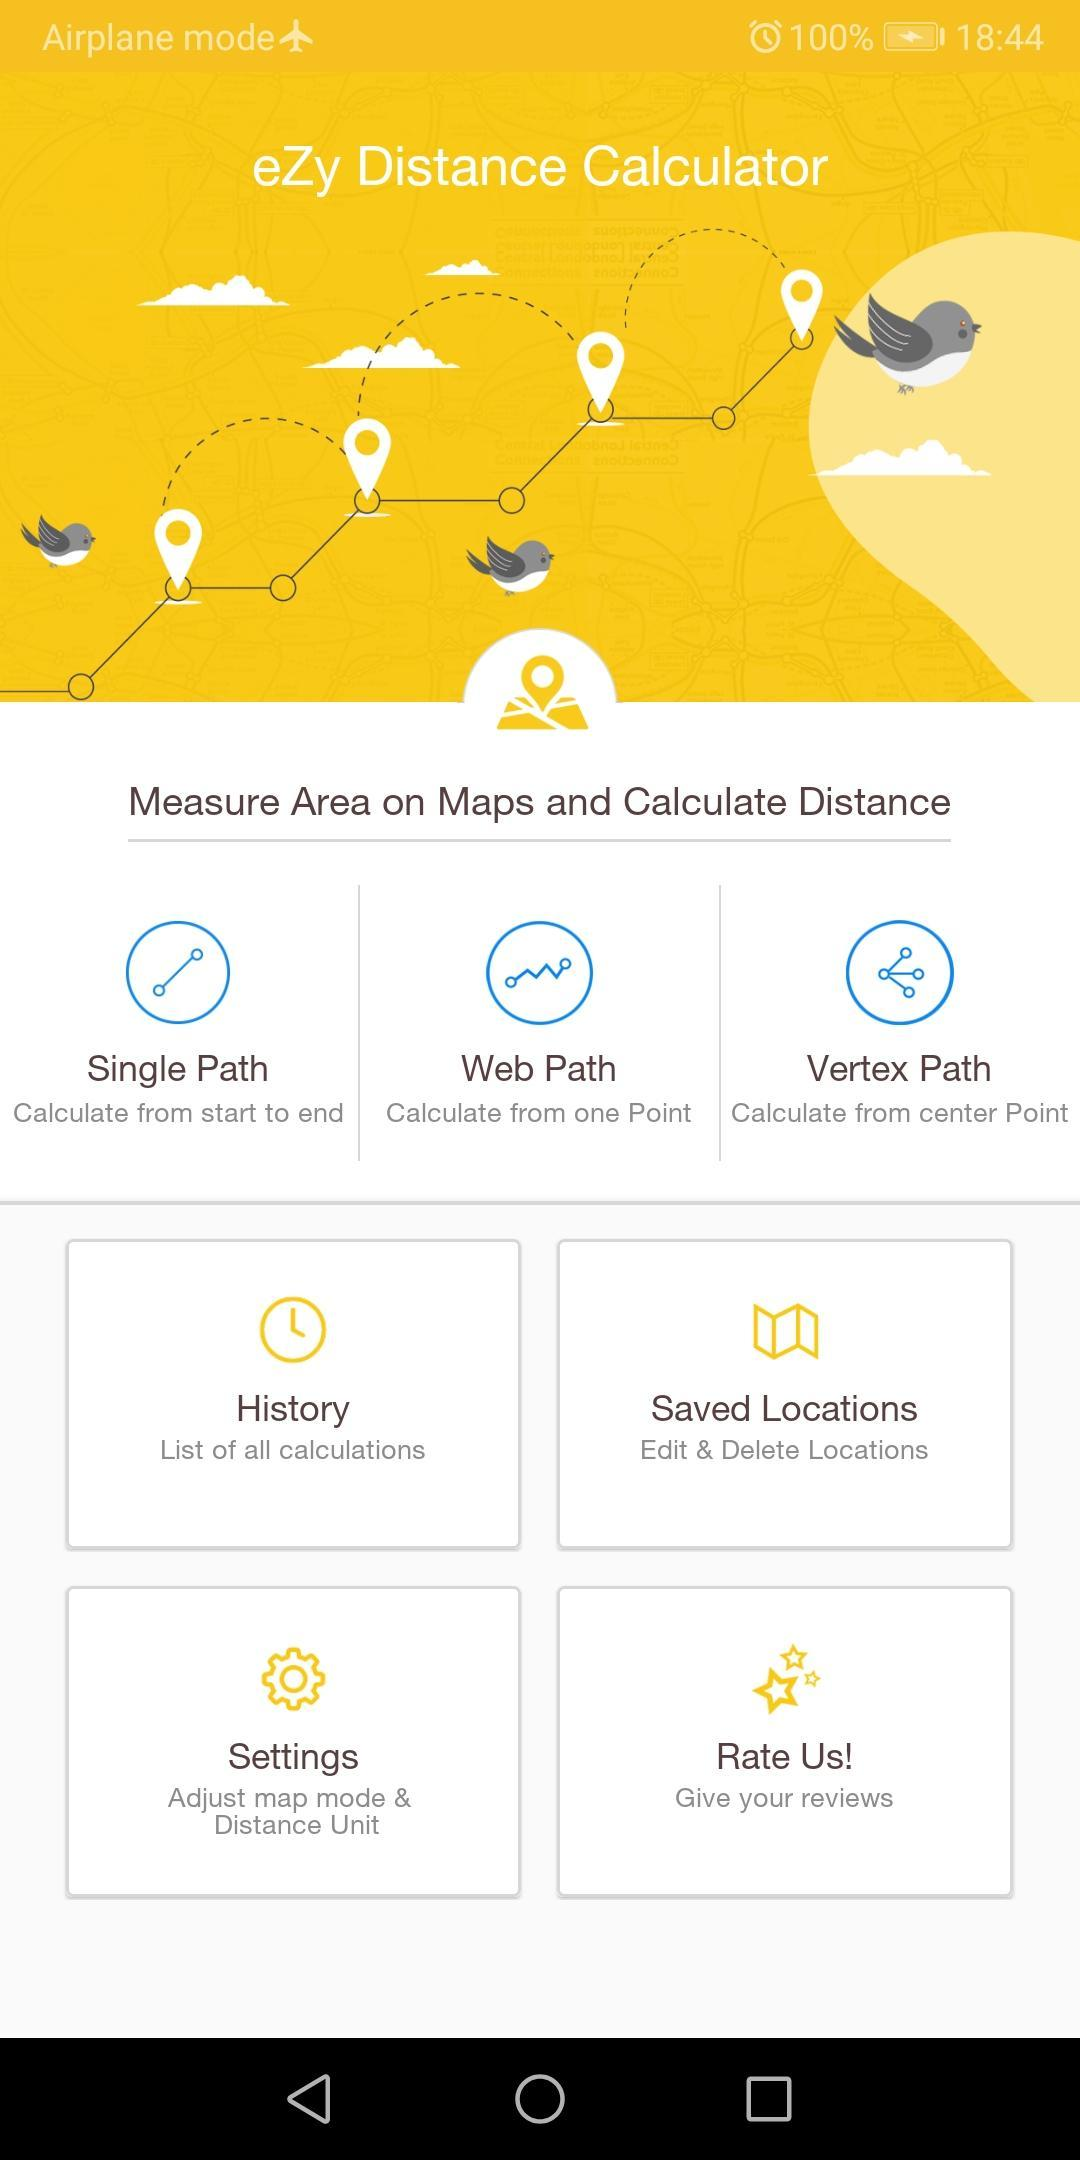 eZy Distance Calculator for Android - APK Download on map services, google miles calculator, map with miles calculation, map distance time, map world time, map area codes, map distance scale, map statistics, map distance between cities, map distance converter, map walking distance, map distance measurement tool, map of ireland with mileage, map ireland dublin and belfast, map travel, map distance ruler, map distance on map, map time zones, map india, map with miles of ireland,